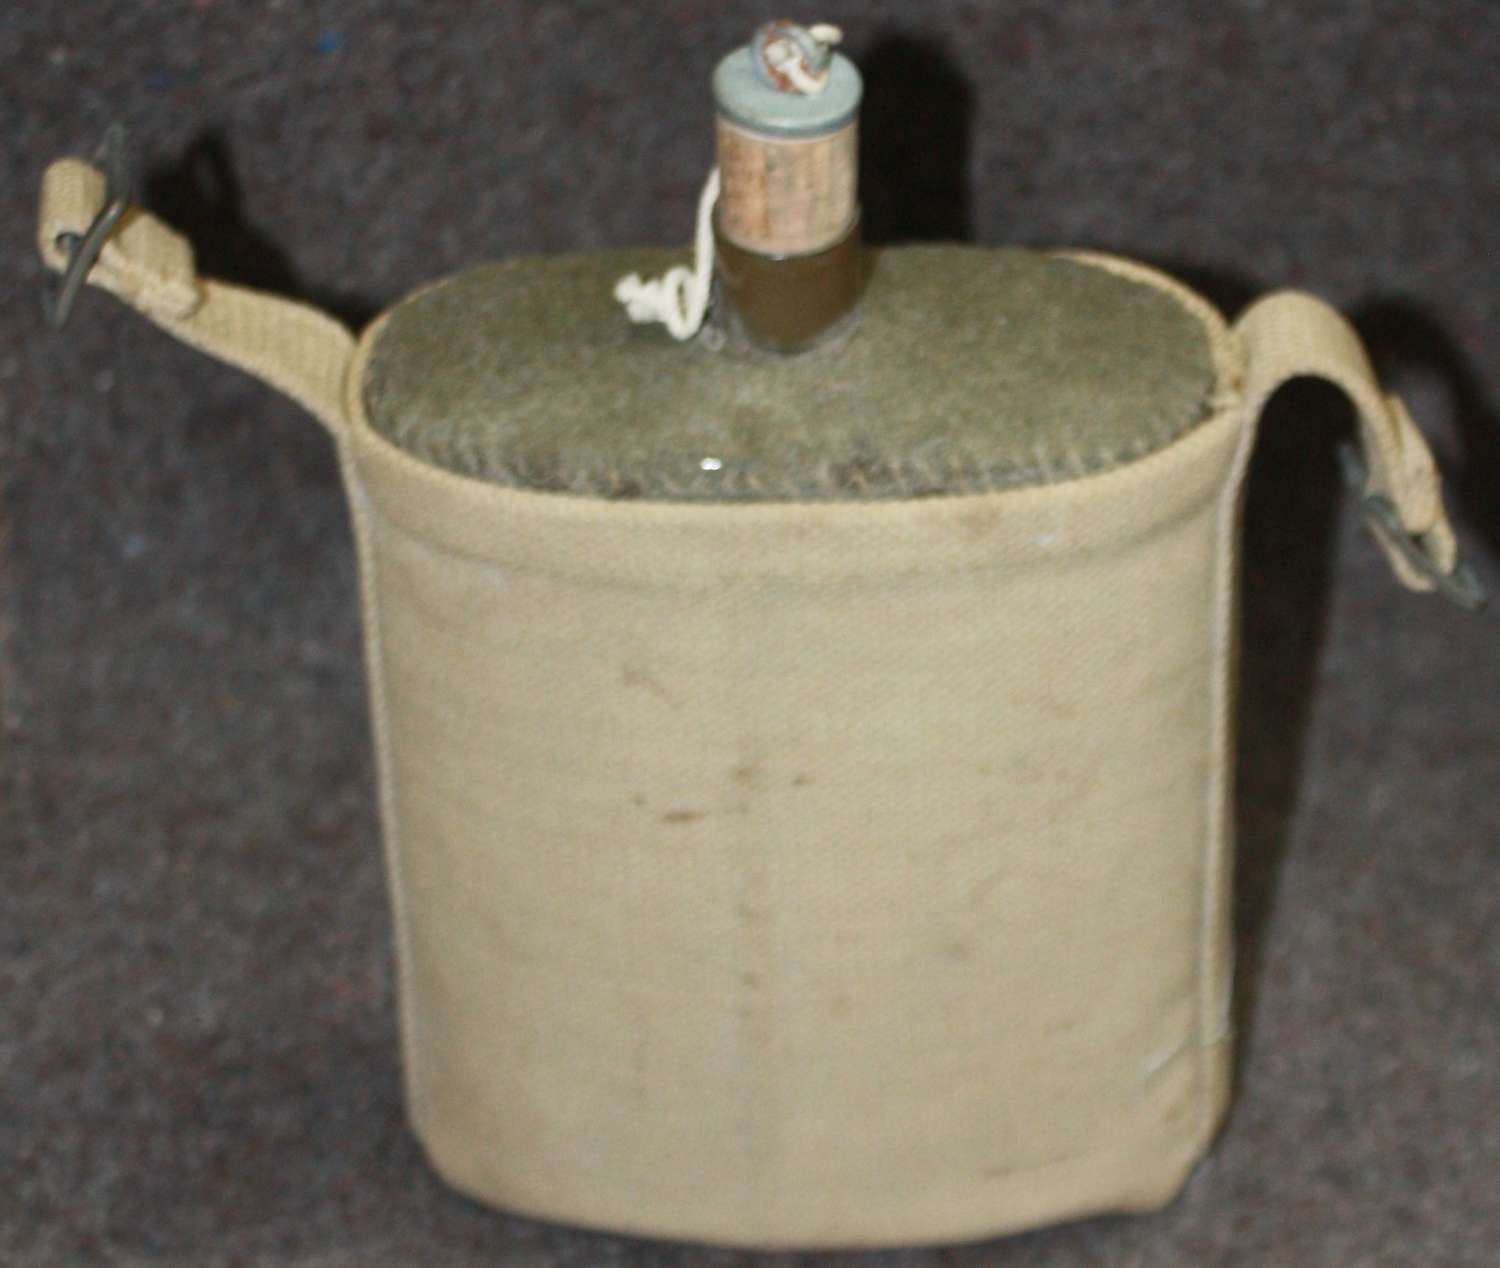 A 1942 DATED WATER BOTTLE SLEEVE AND BOTTLE